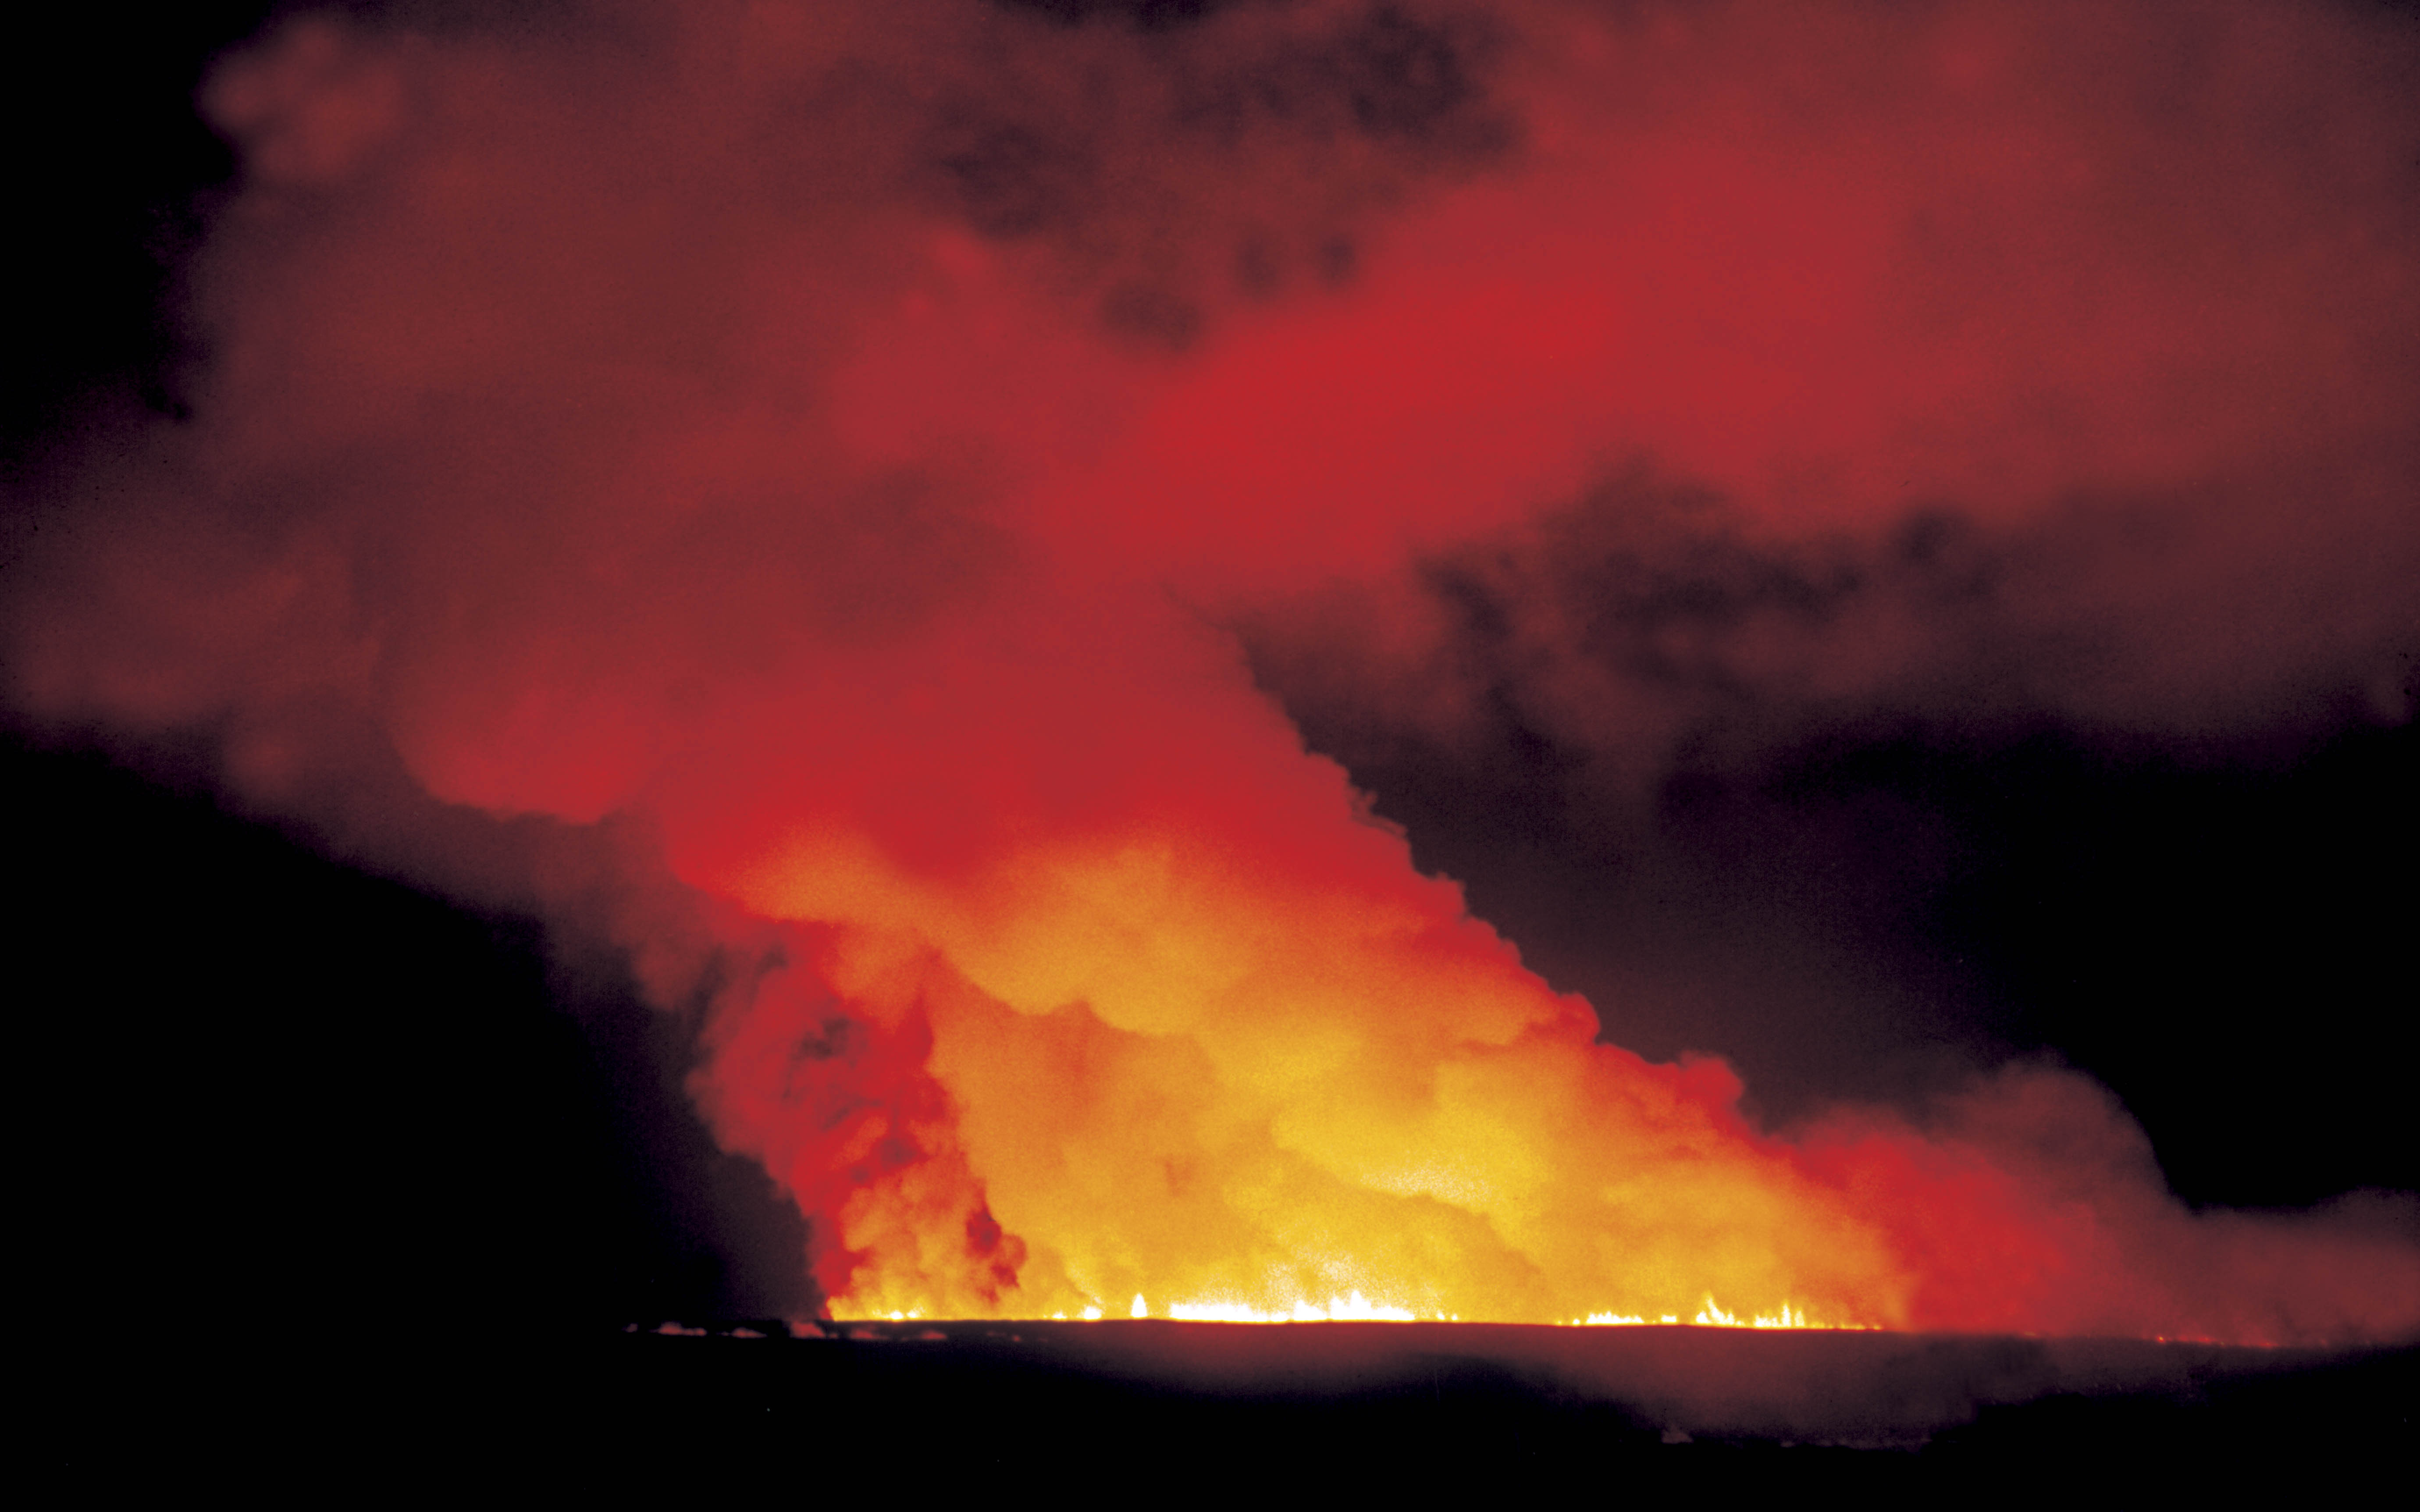 The curtain of fire from the Sunset Crater volcano eruption would have been visible at great distances